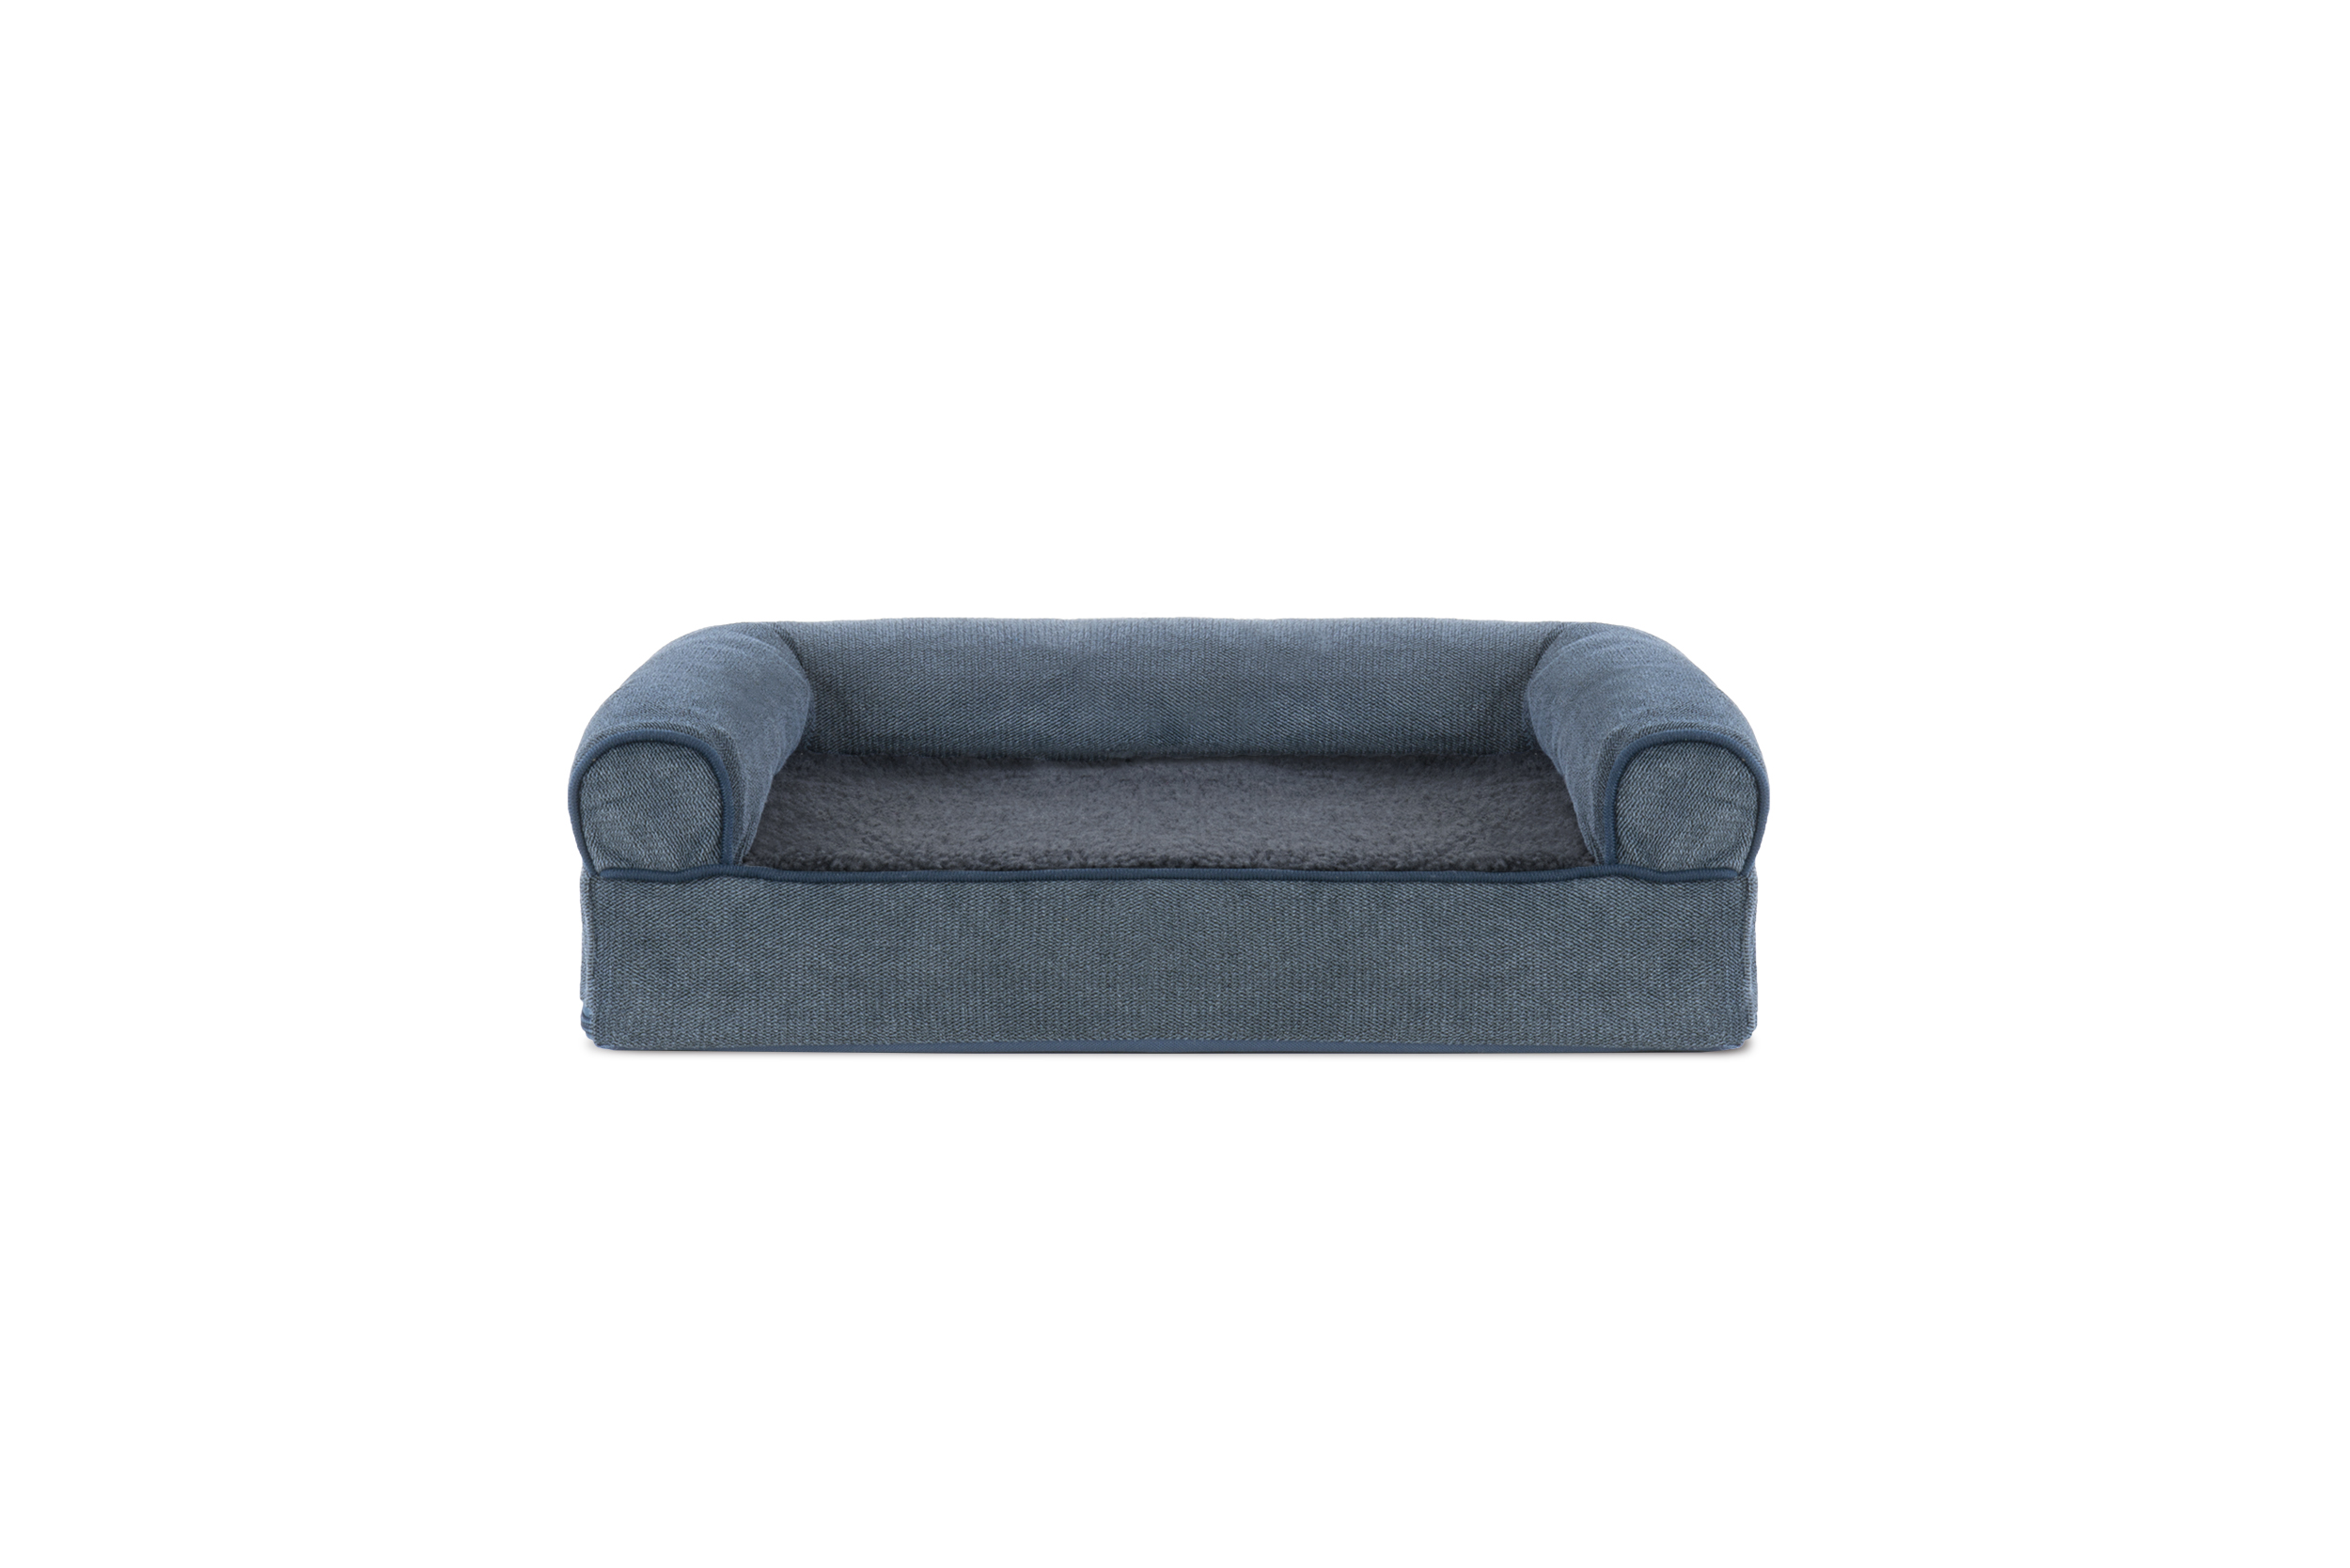 orthopedic sofa sofas con chaise longue baratos bed convertible with net